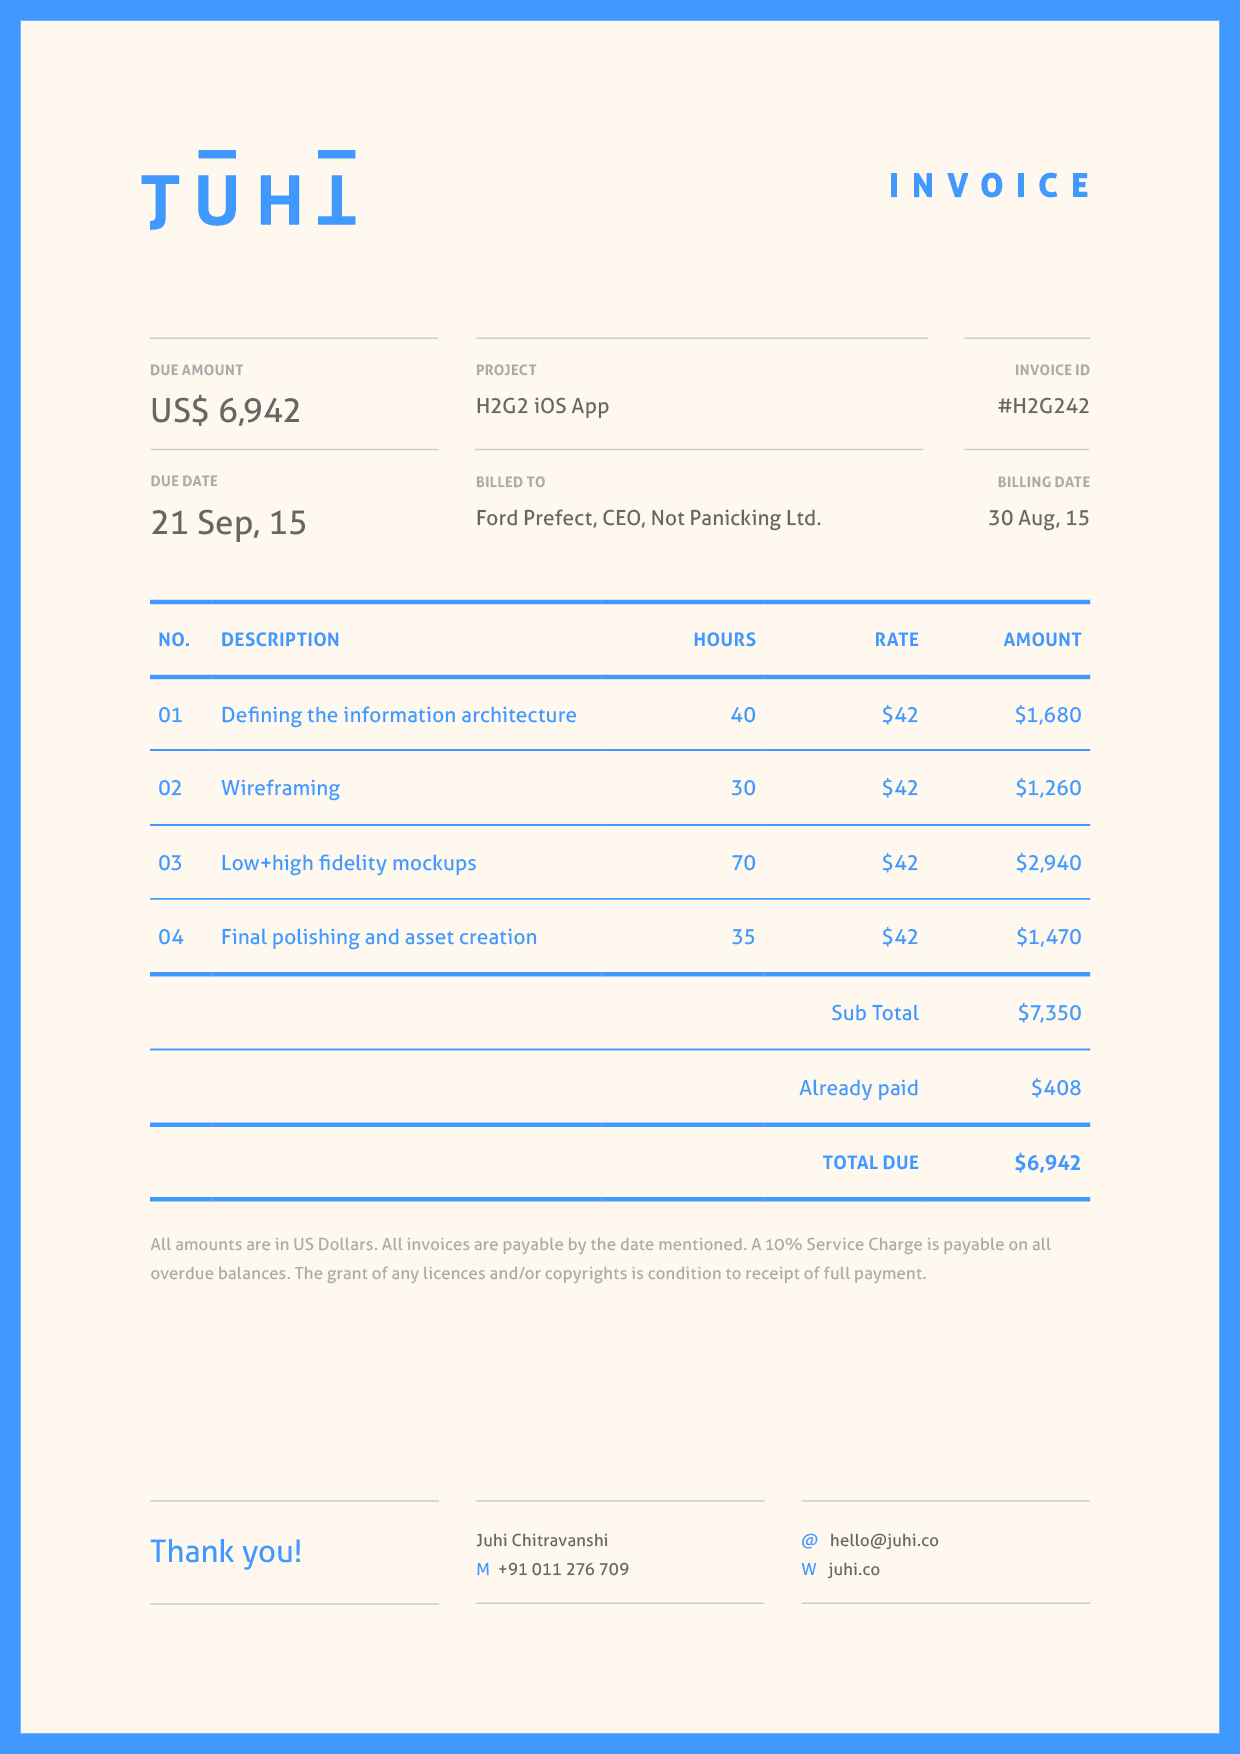 Pigbrotherus  Outstanding Dont Hold Back On Your Invoice  Inspiring Designs  With Magnificent Invoice By Juhi Chitravanshi Follow With Astonishing Blank Invoice Microsoft Word Also Perforated Invoice Paper In Addition Typical Invoice And Define Sales Invoice As Well As Sample Invoice Forms Additionally Microsoft Word  Invoice Template From Inspirationfeedcom With Pigbrotherus  Magnificent Dont Hold Back On Your Invoice  Inspiring Designs  With Astonishing Invoice By Juhi Chitravanshi Follow And Outstanding Blank Invoice Microsoft Word Also Perforated Invoice Paper In Addition Typical Invoice From Inspirationfeedcom